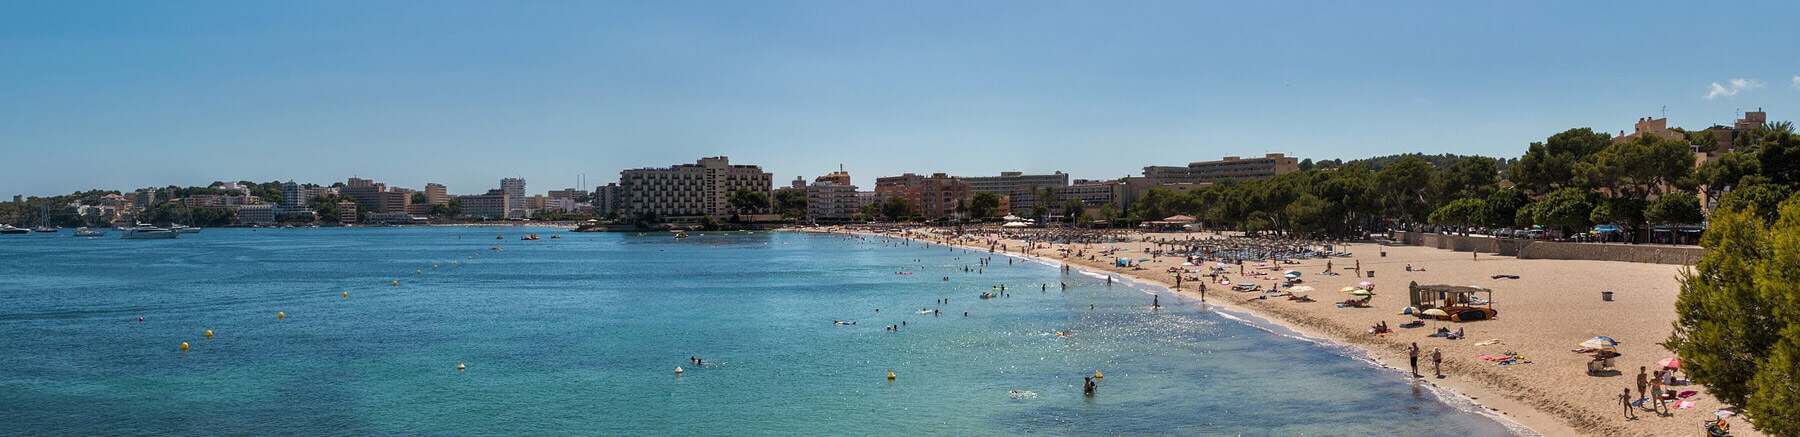 Popular beach in Palma de Mallorca